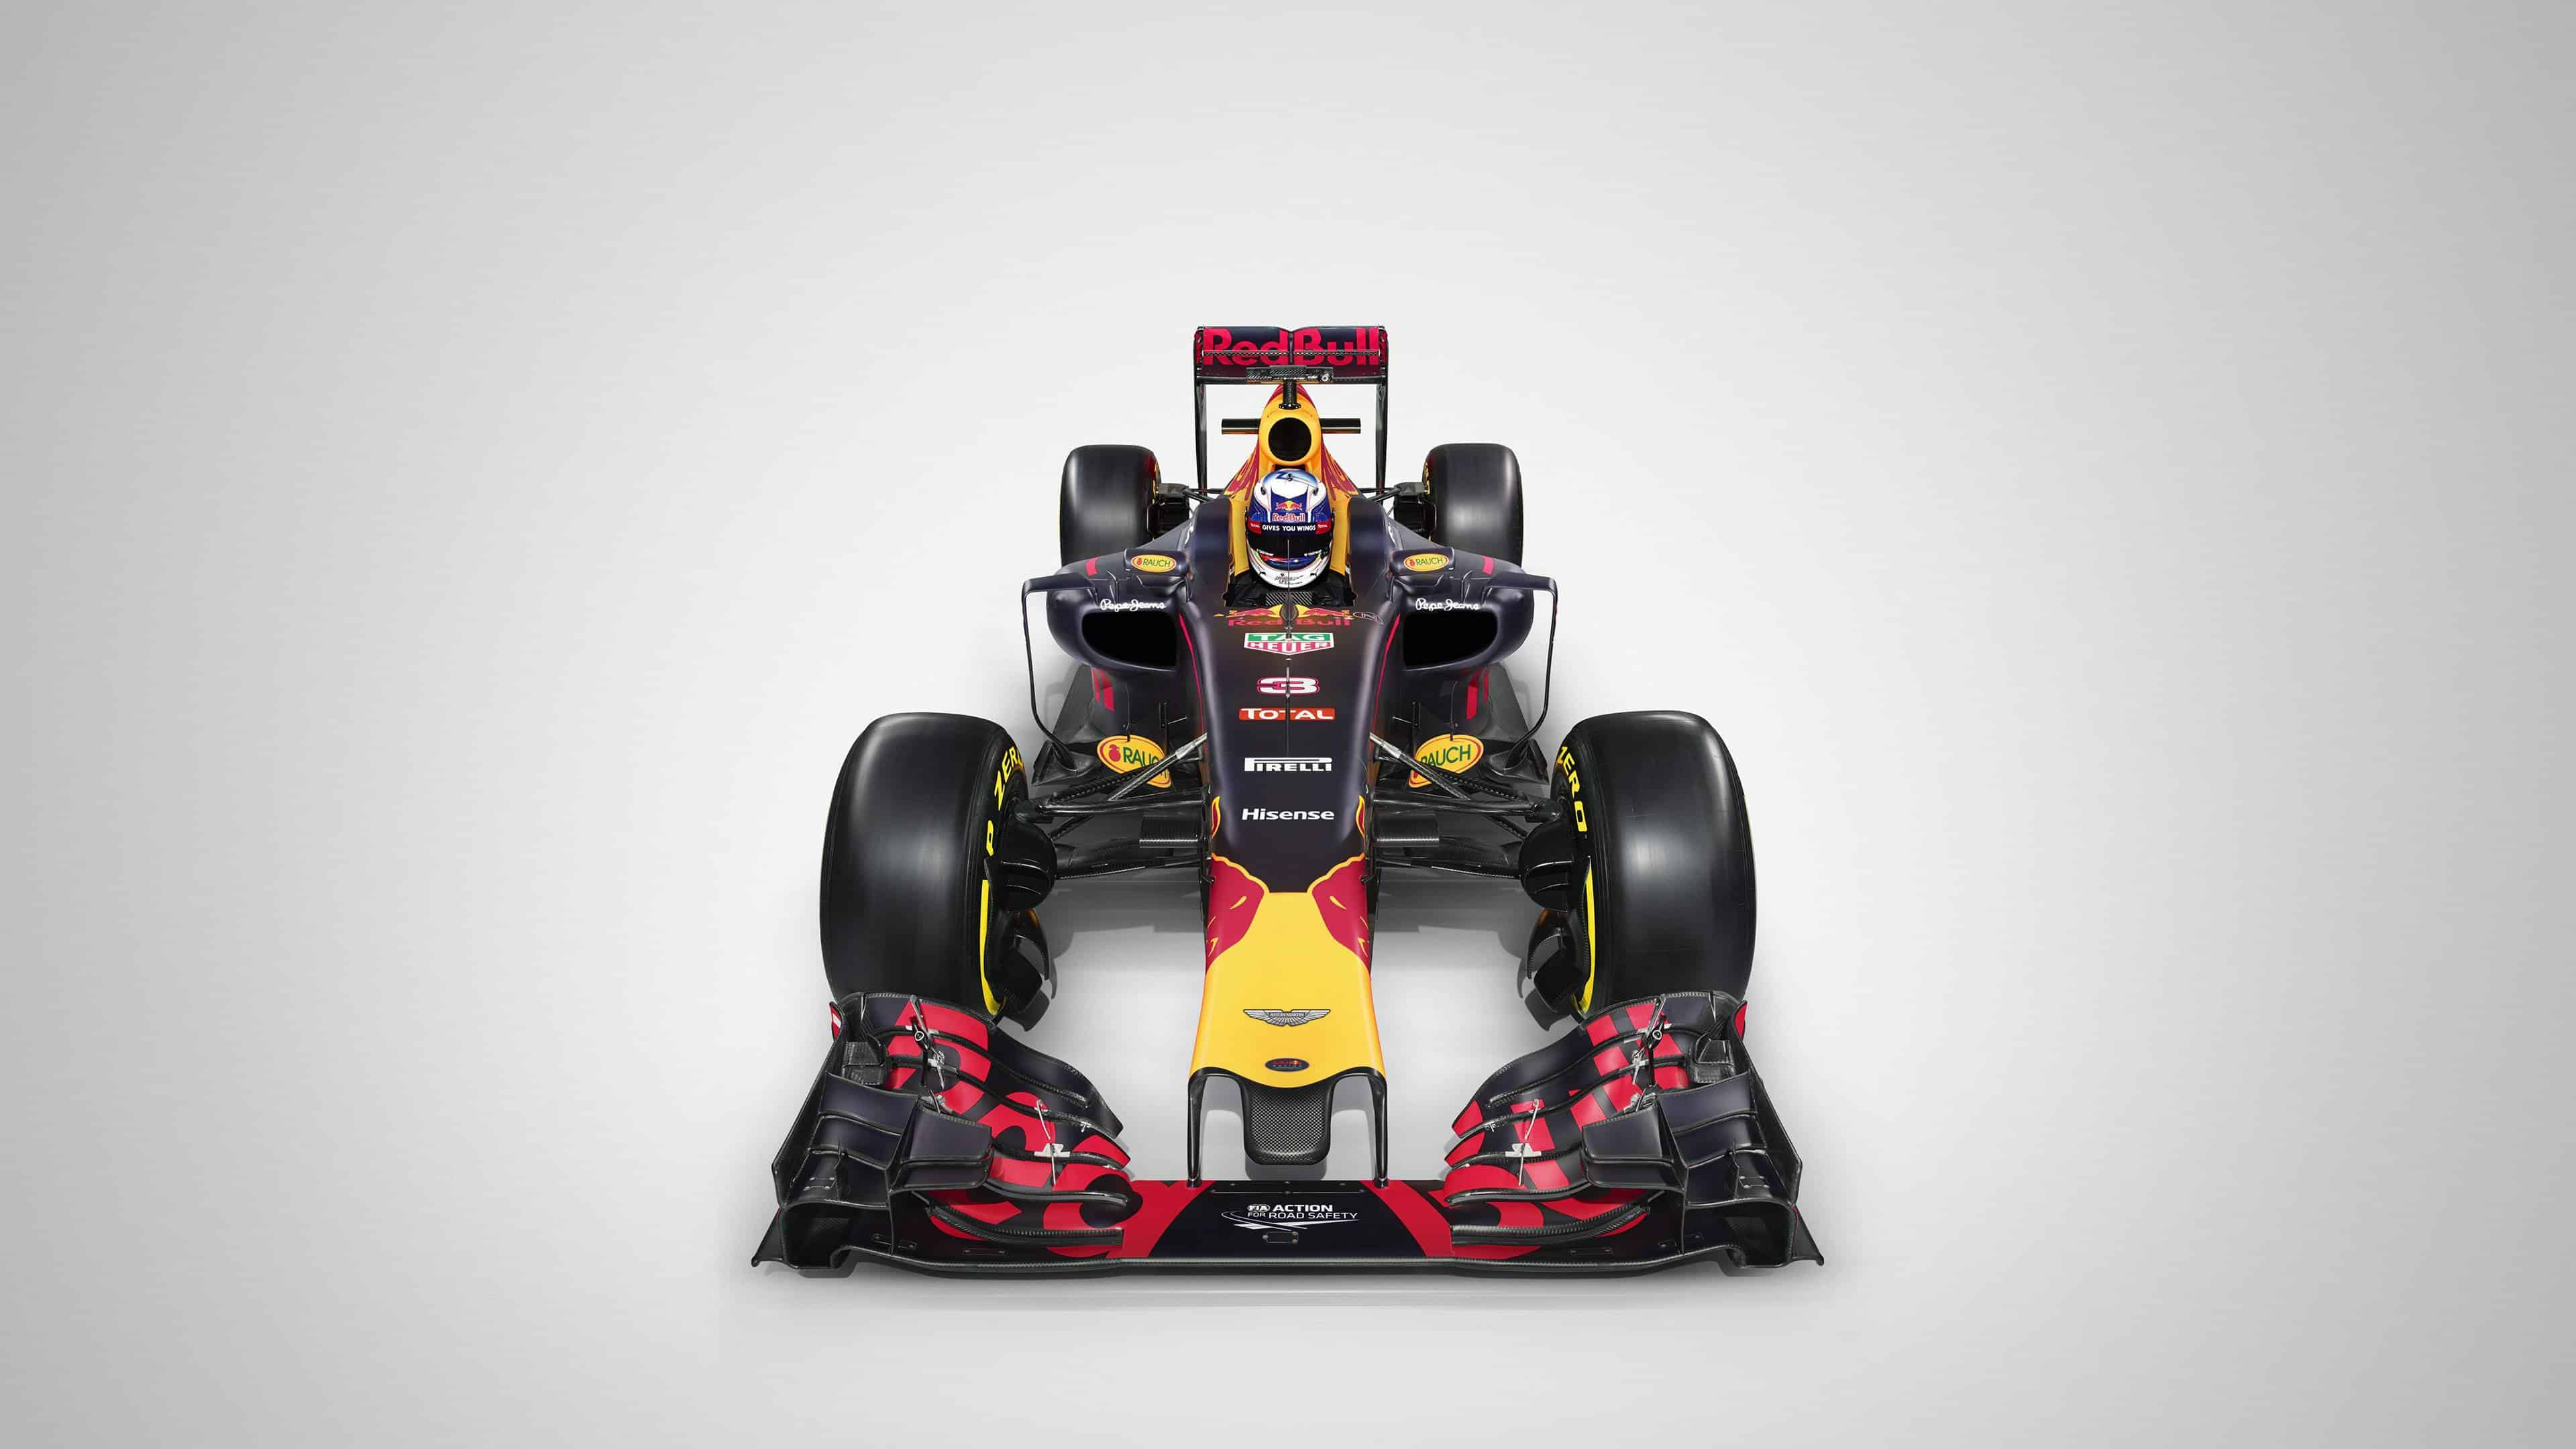 aston martin red bull f1 uhd 4k wallpaper